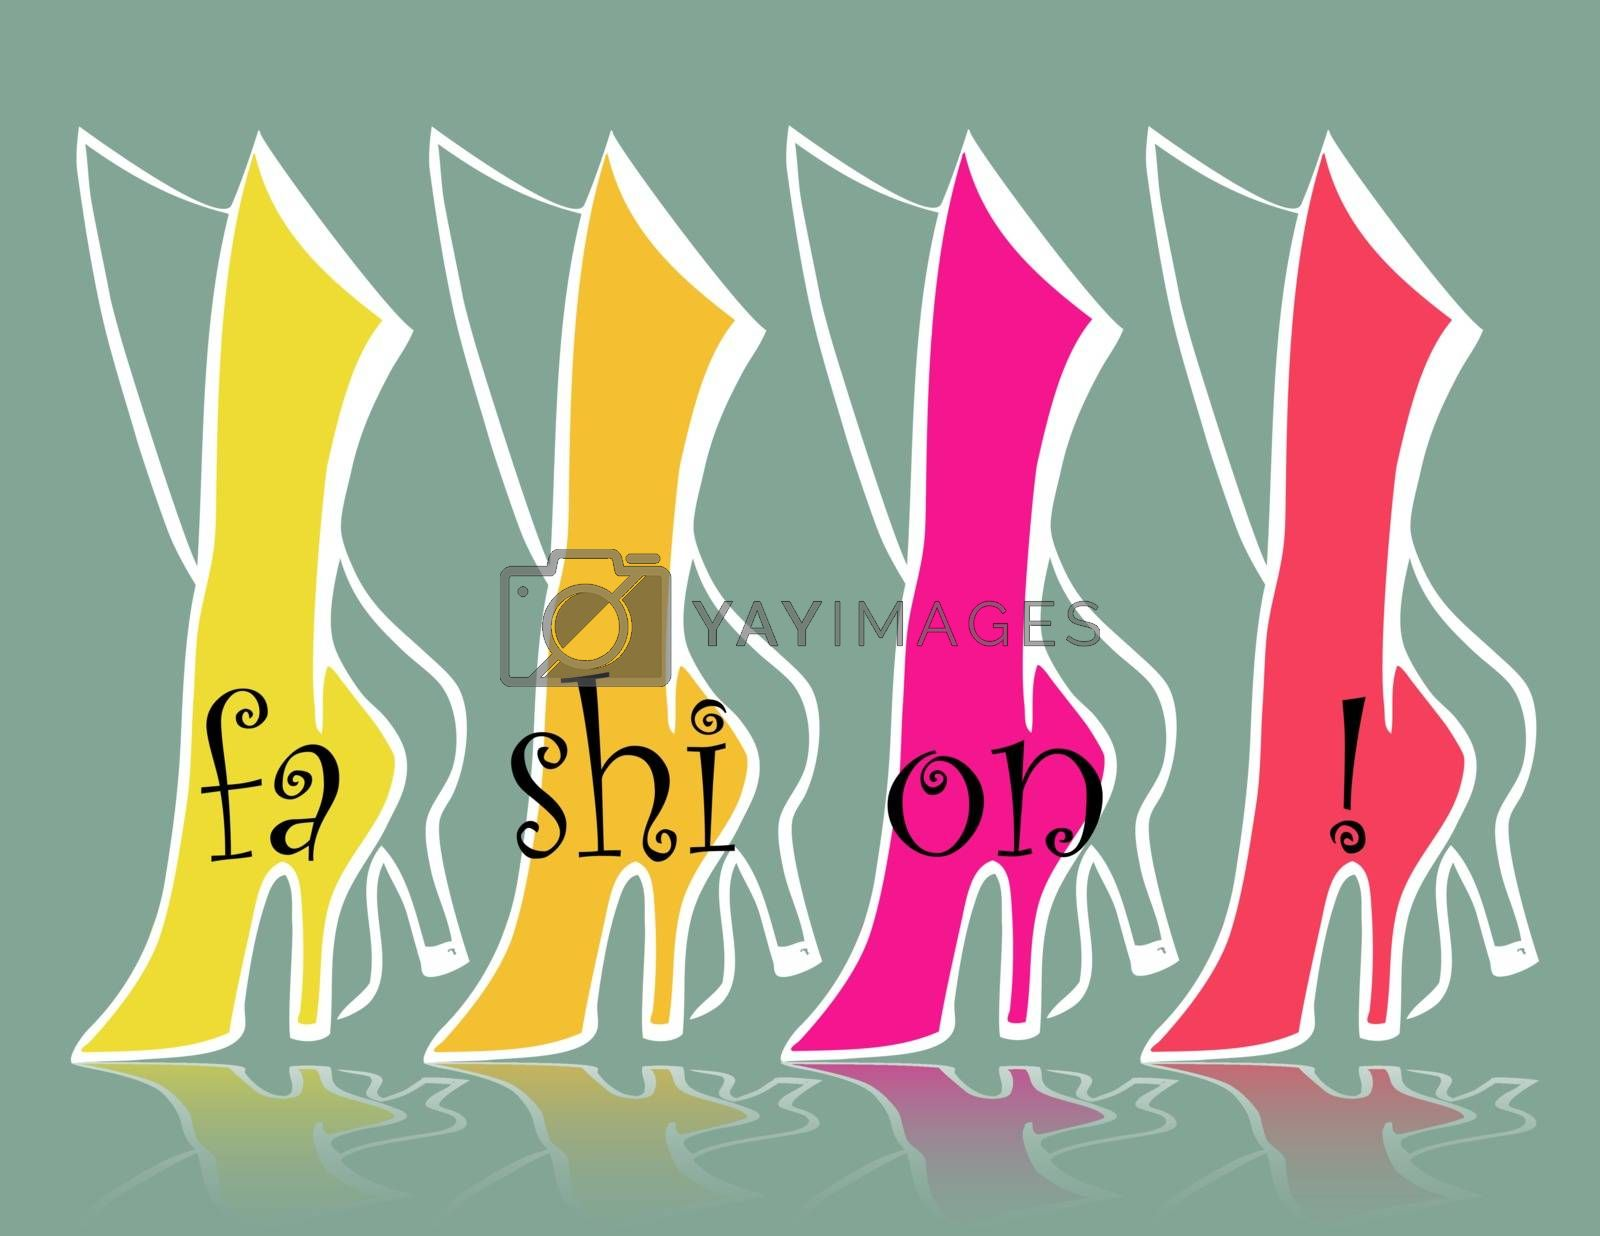 fashion backgrounds with green, yellow, pink and red boots